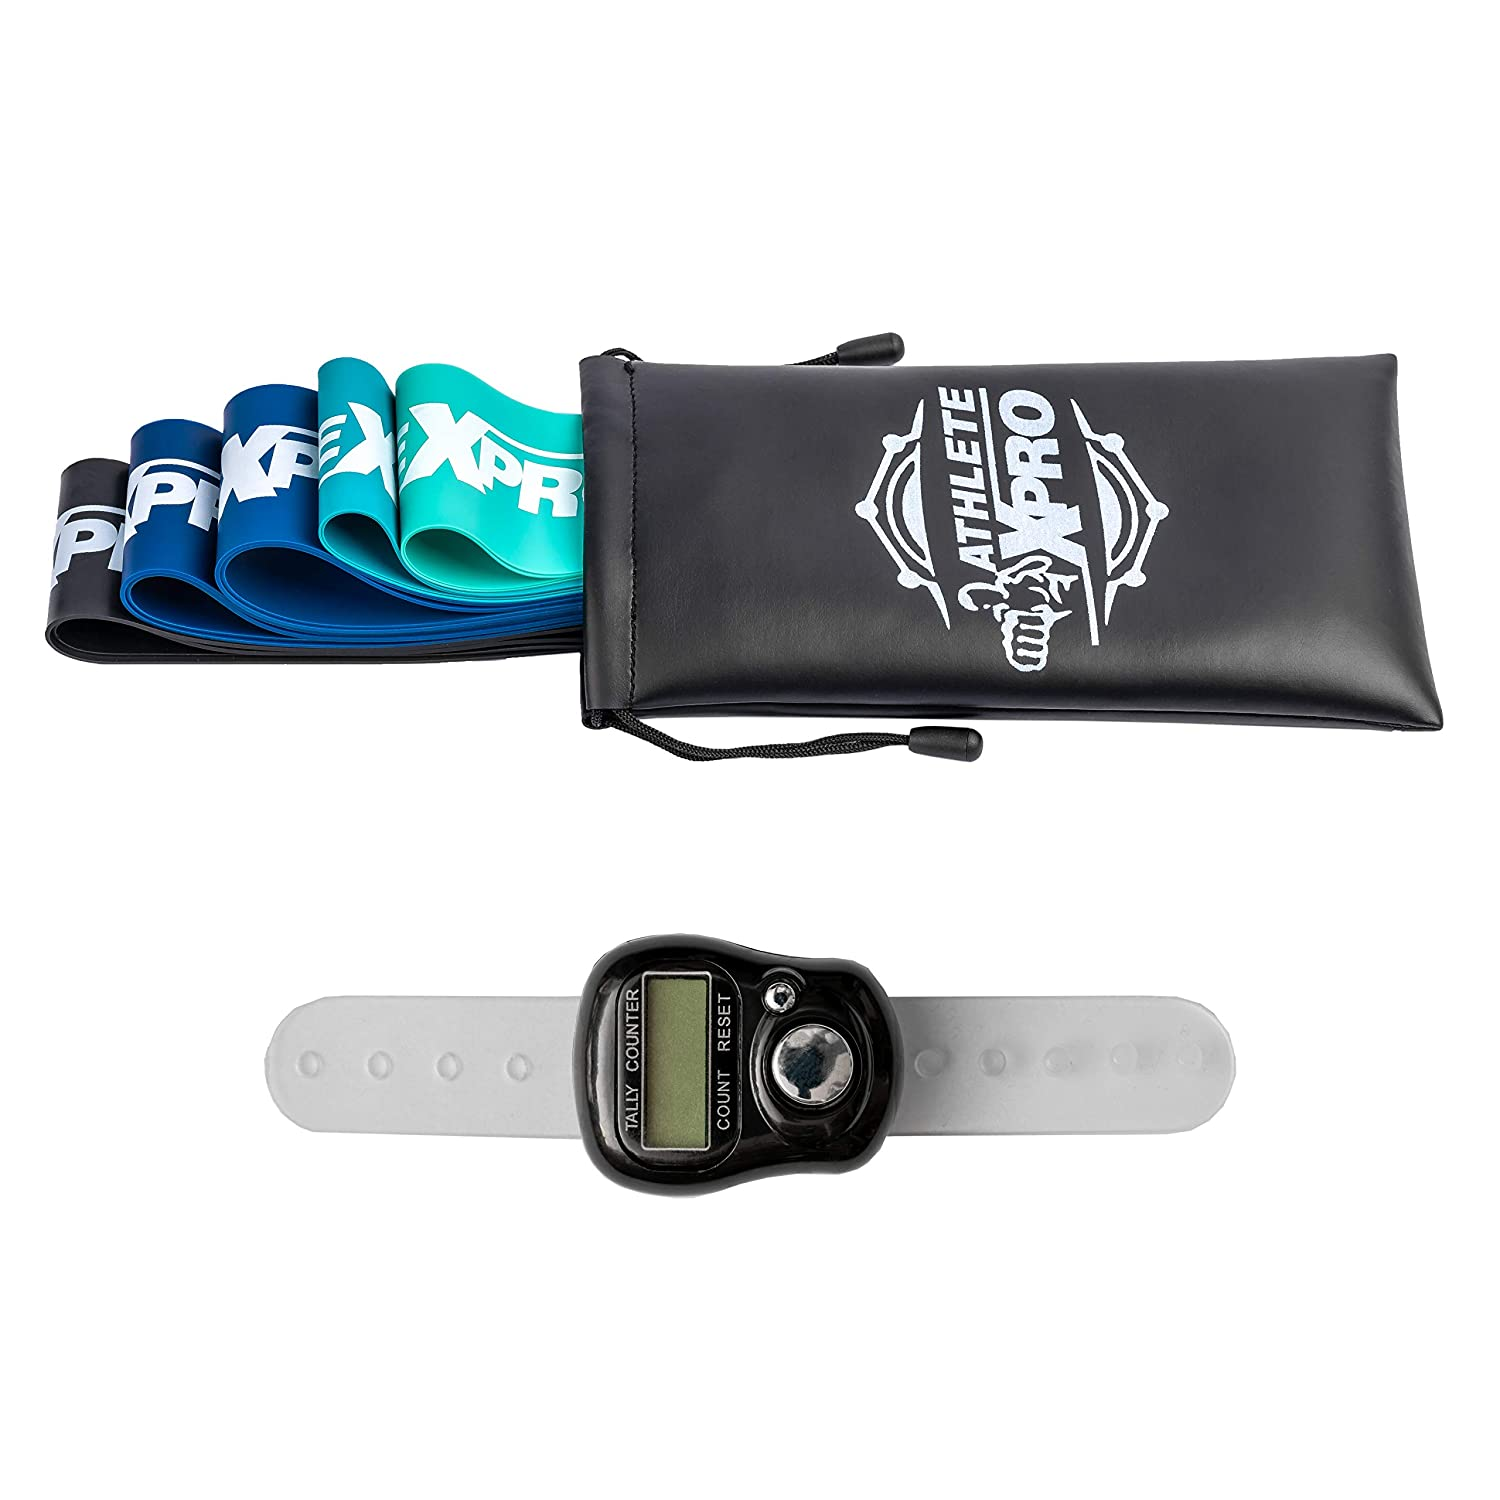 Body Exercises Workout Booklet /& Leather Bag Helps To Strengthen /& Tone Your Muscles For Fitness Training Physiotherapy /& Rehabilitation ATHLETE X PRO Resistance Bands Includes Rep Counter